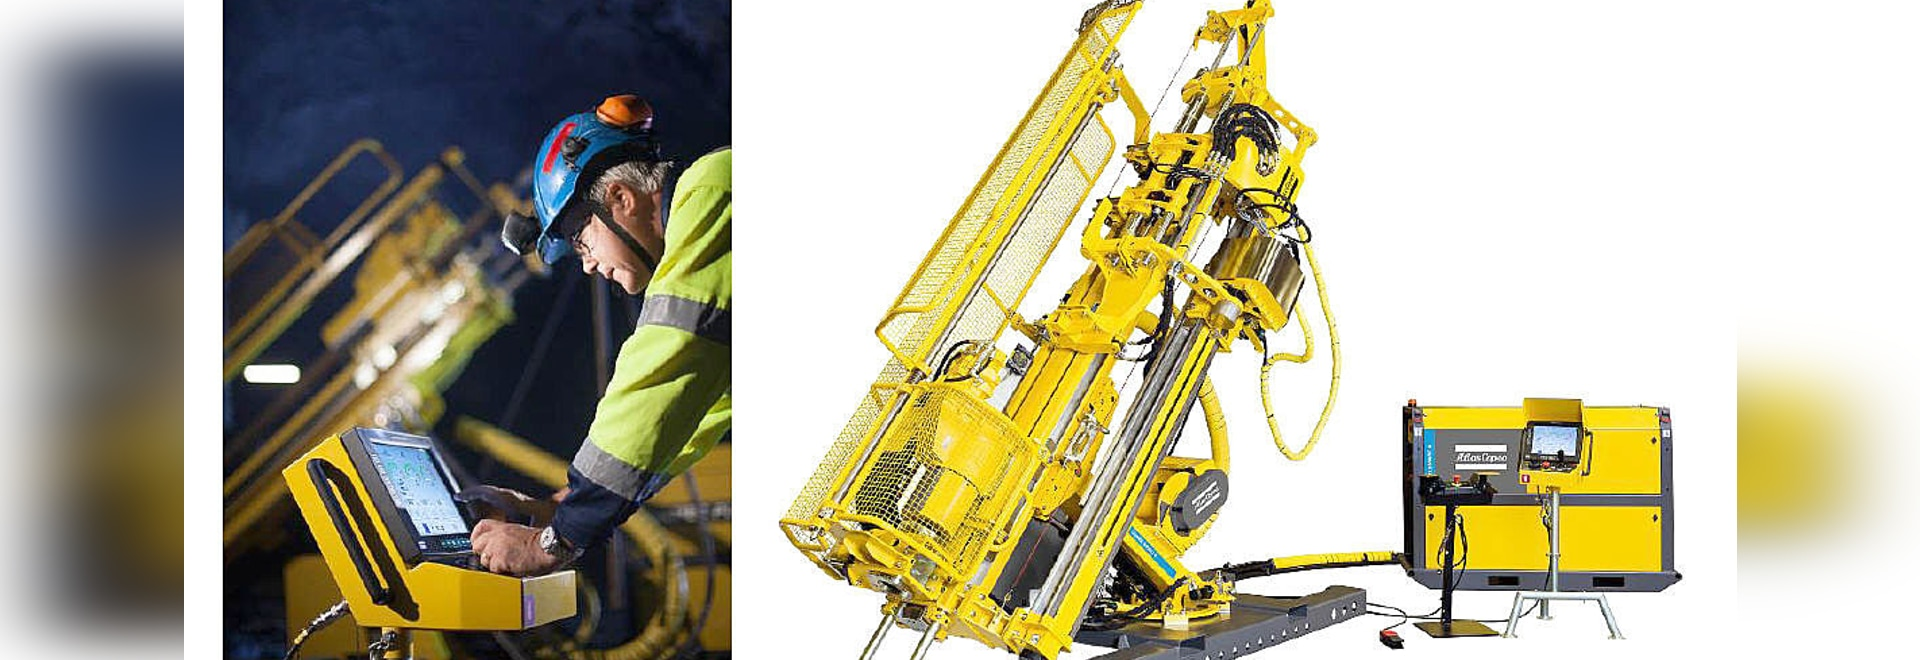 Increased safety in underground drilling with Atlas Copco's new Diamec Smart series